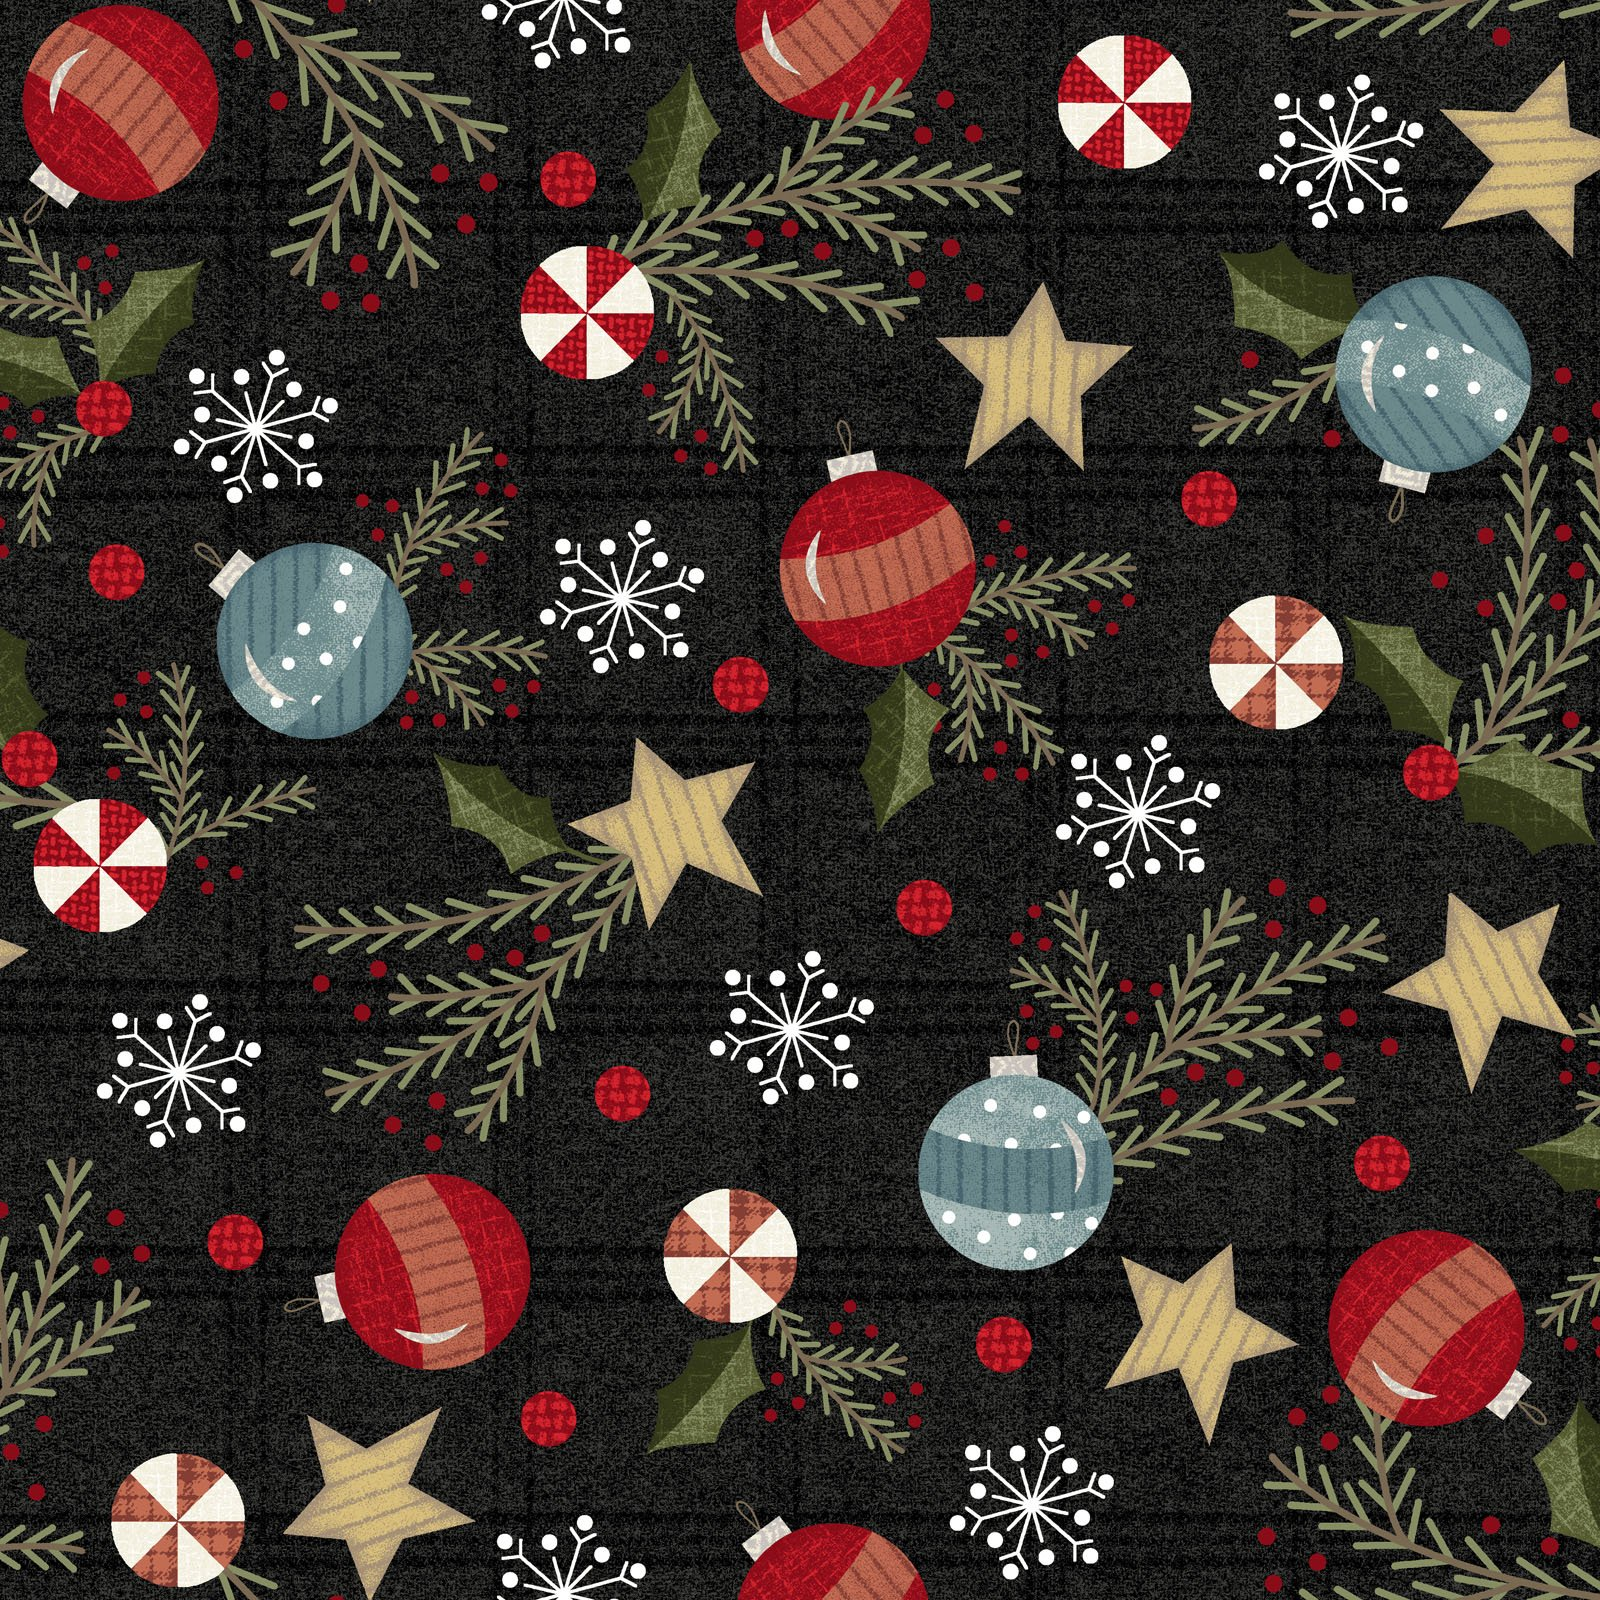 EESC-F9934 JK - SNOWDAYS FLANNEL BY BONNIE SULLIVAN TRIMMINGS CHARCOAL - ARRIVING IN JULY 2021